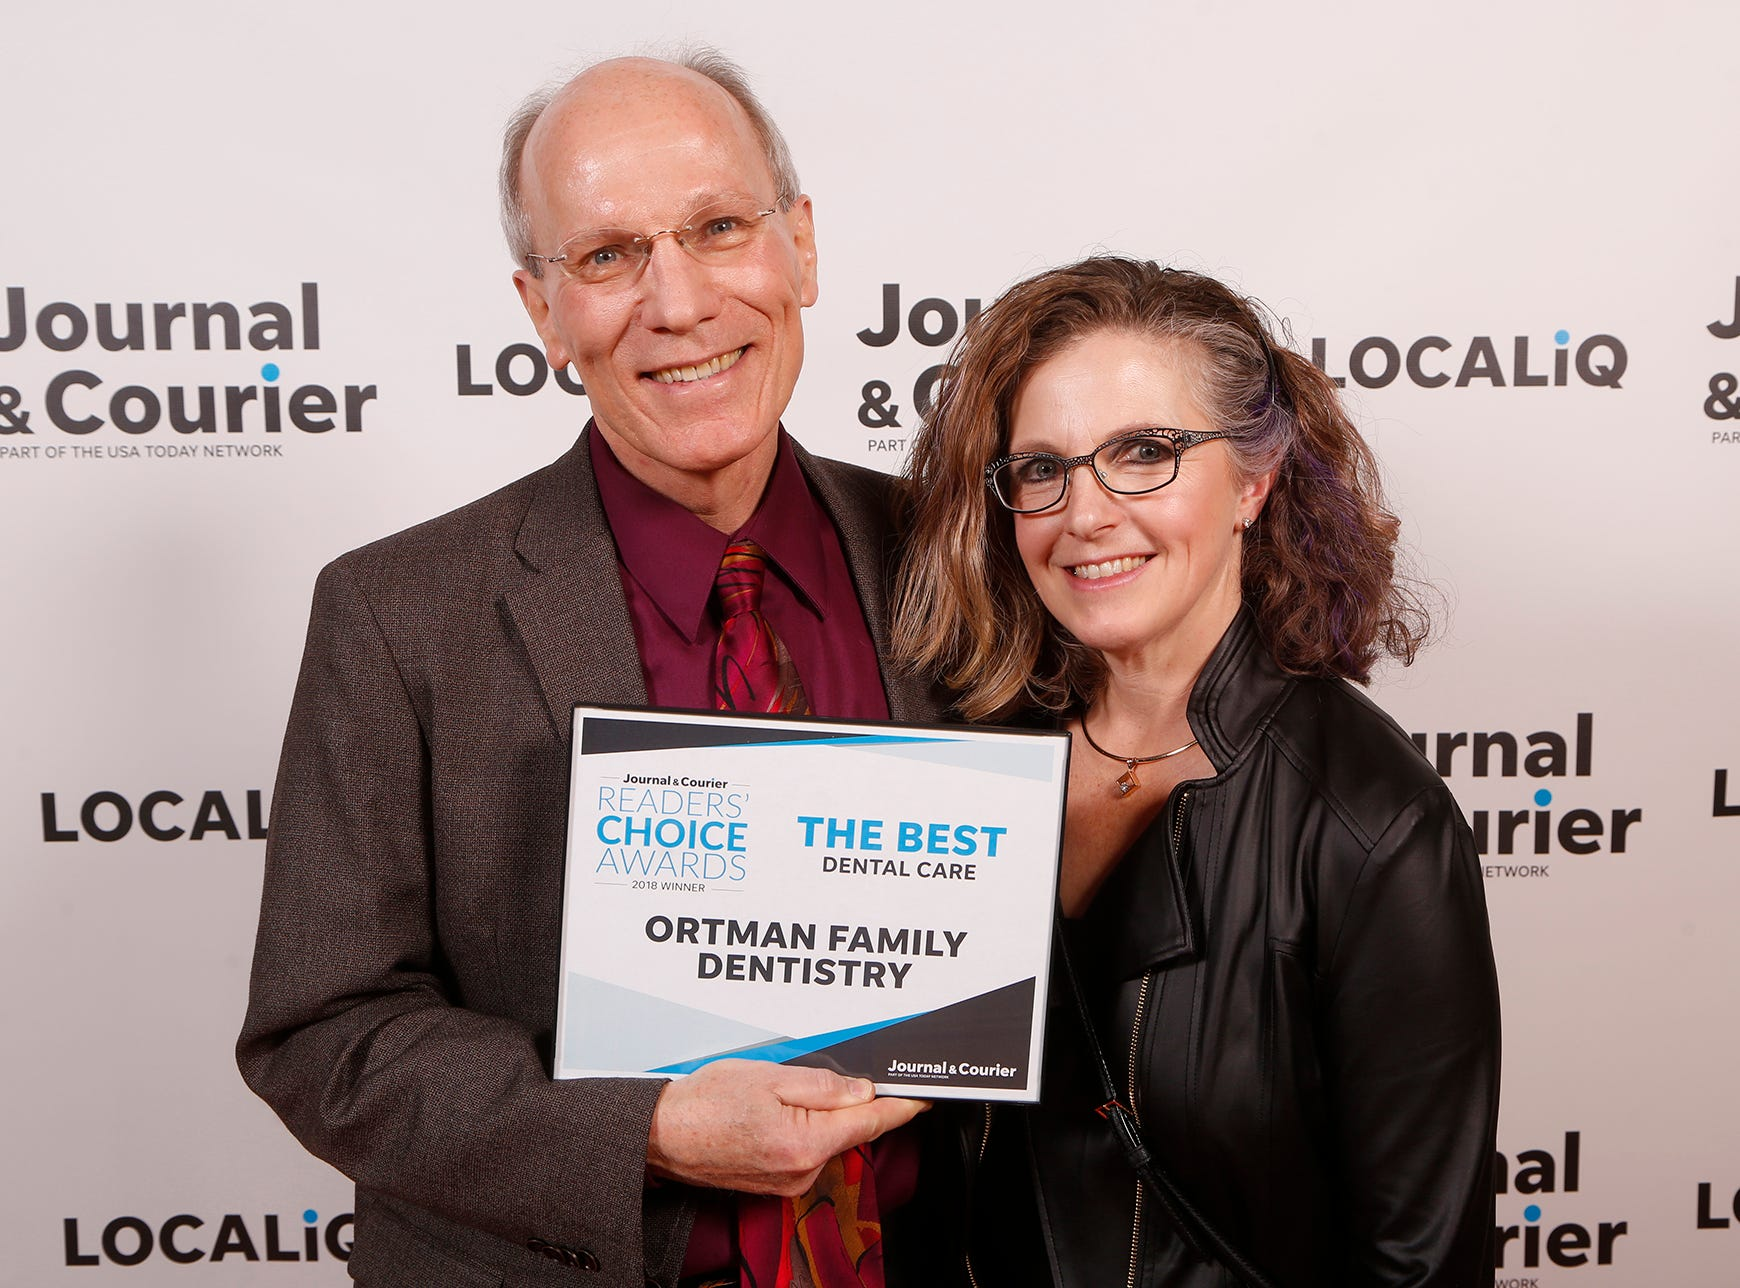 Ortman Family Dentistry, Journal & Courier Readers' Choice Awards winner for the best dental care.